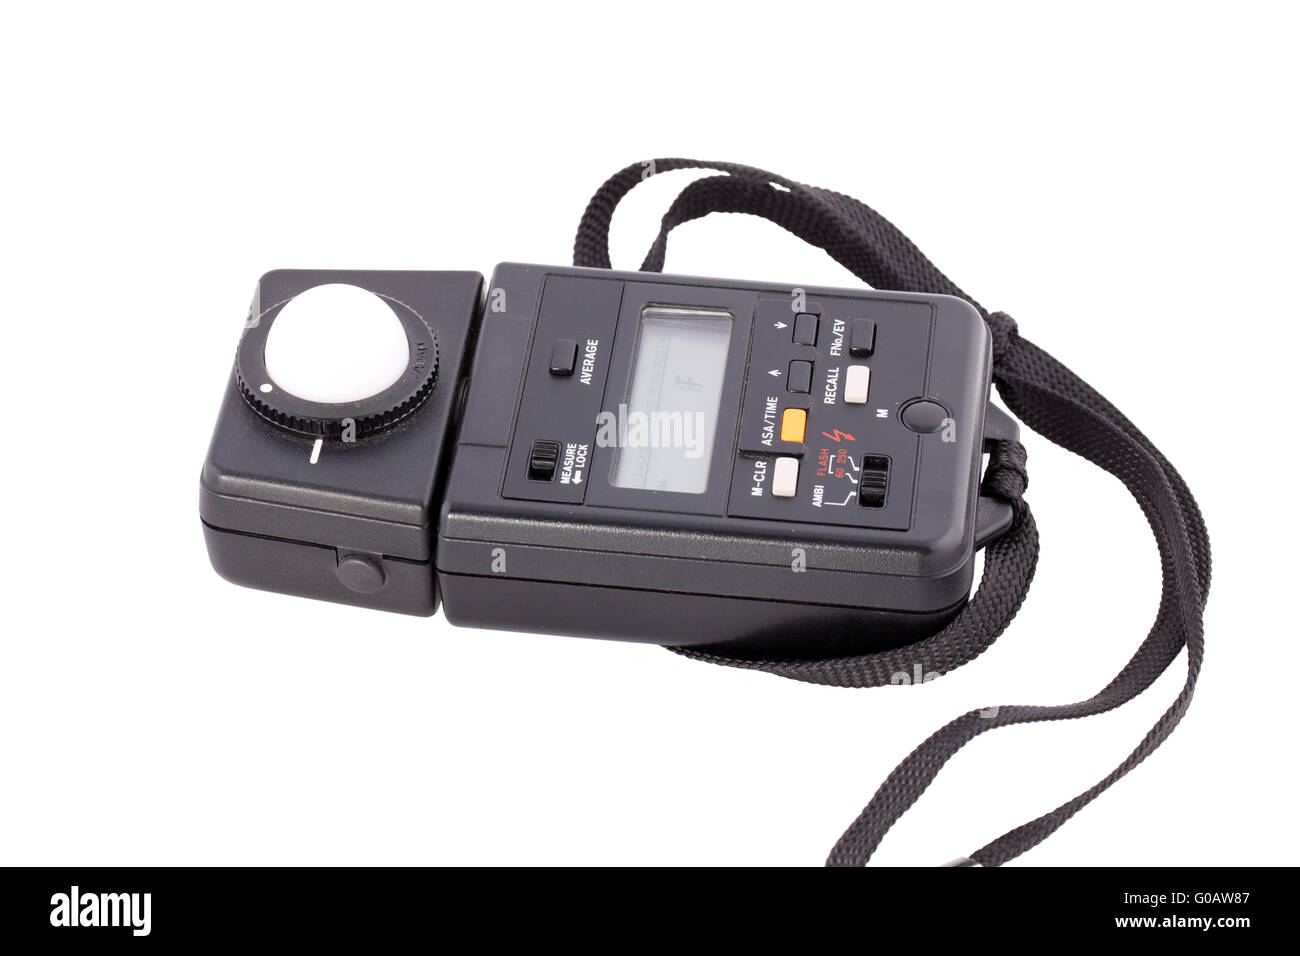 Black photography flash light meter on white background - Stock Image